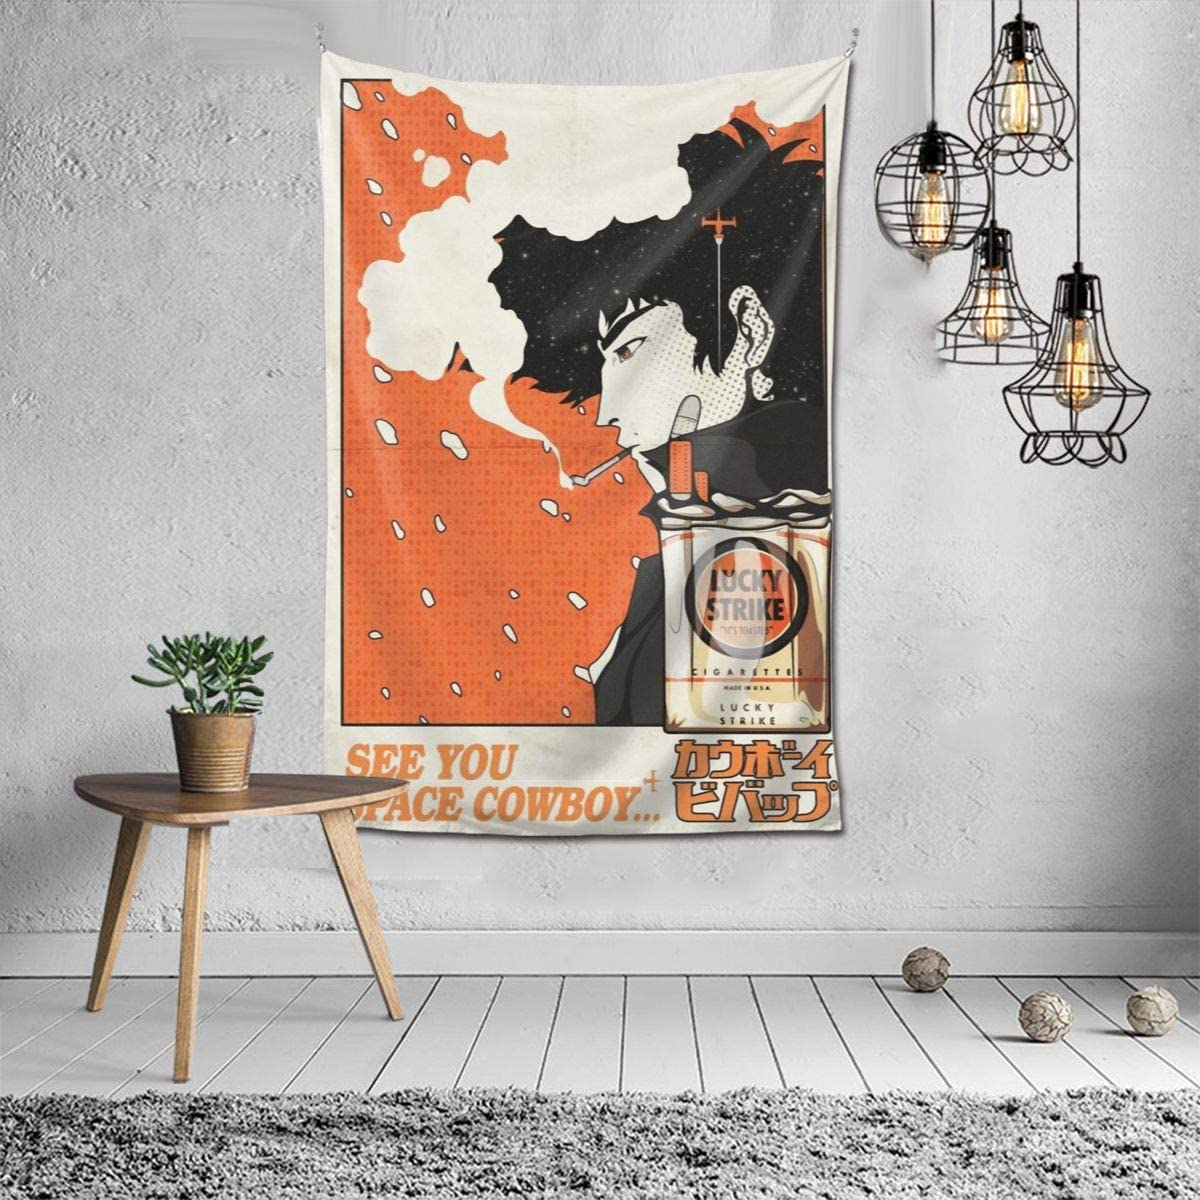 Anime Cowboy Bebop See You Space Spike Spiegel Wall Art Hanging Decor Tapestry 60×40 Inch